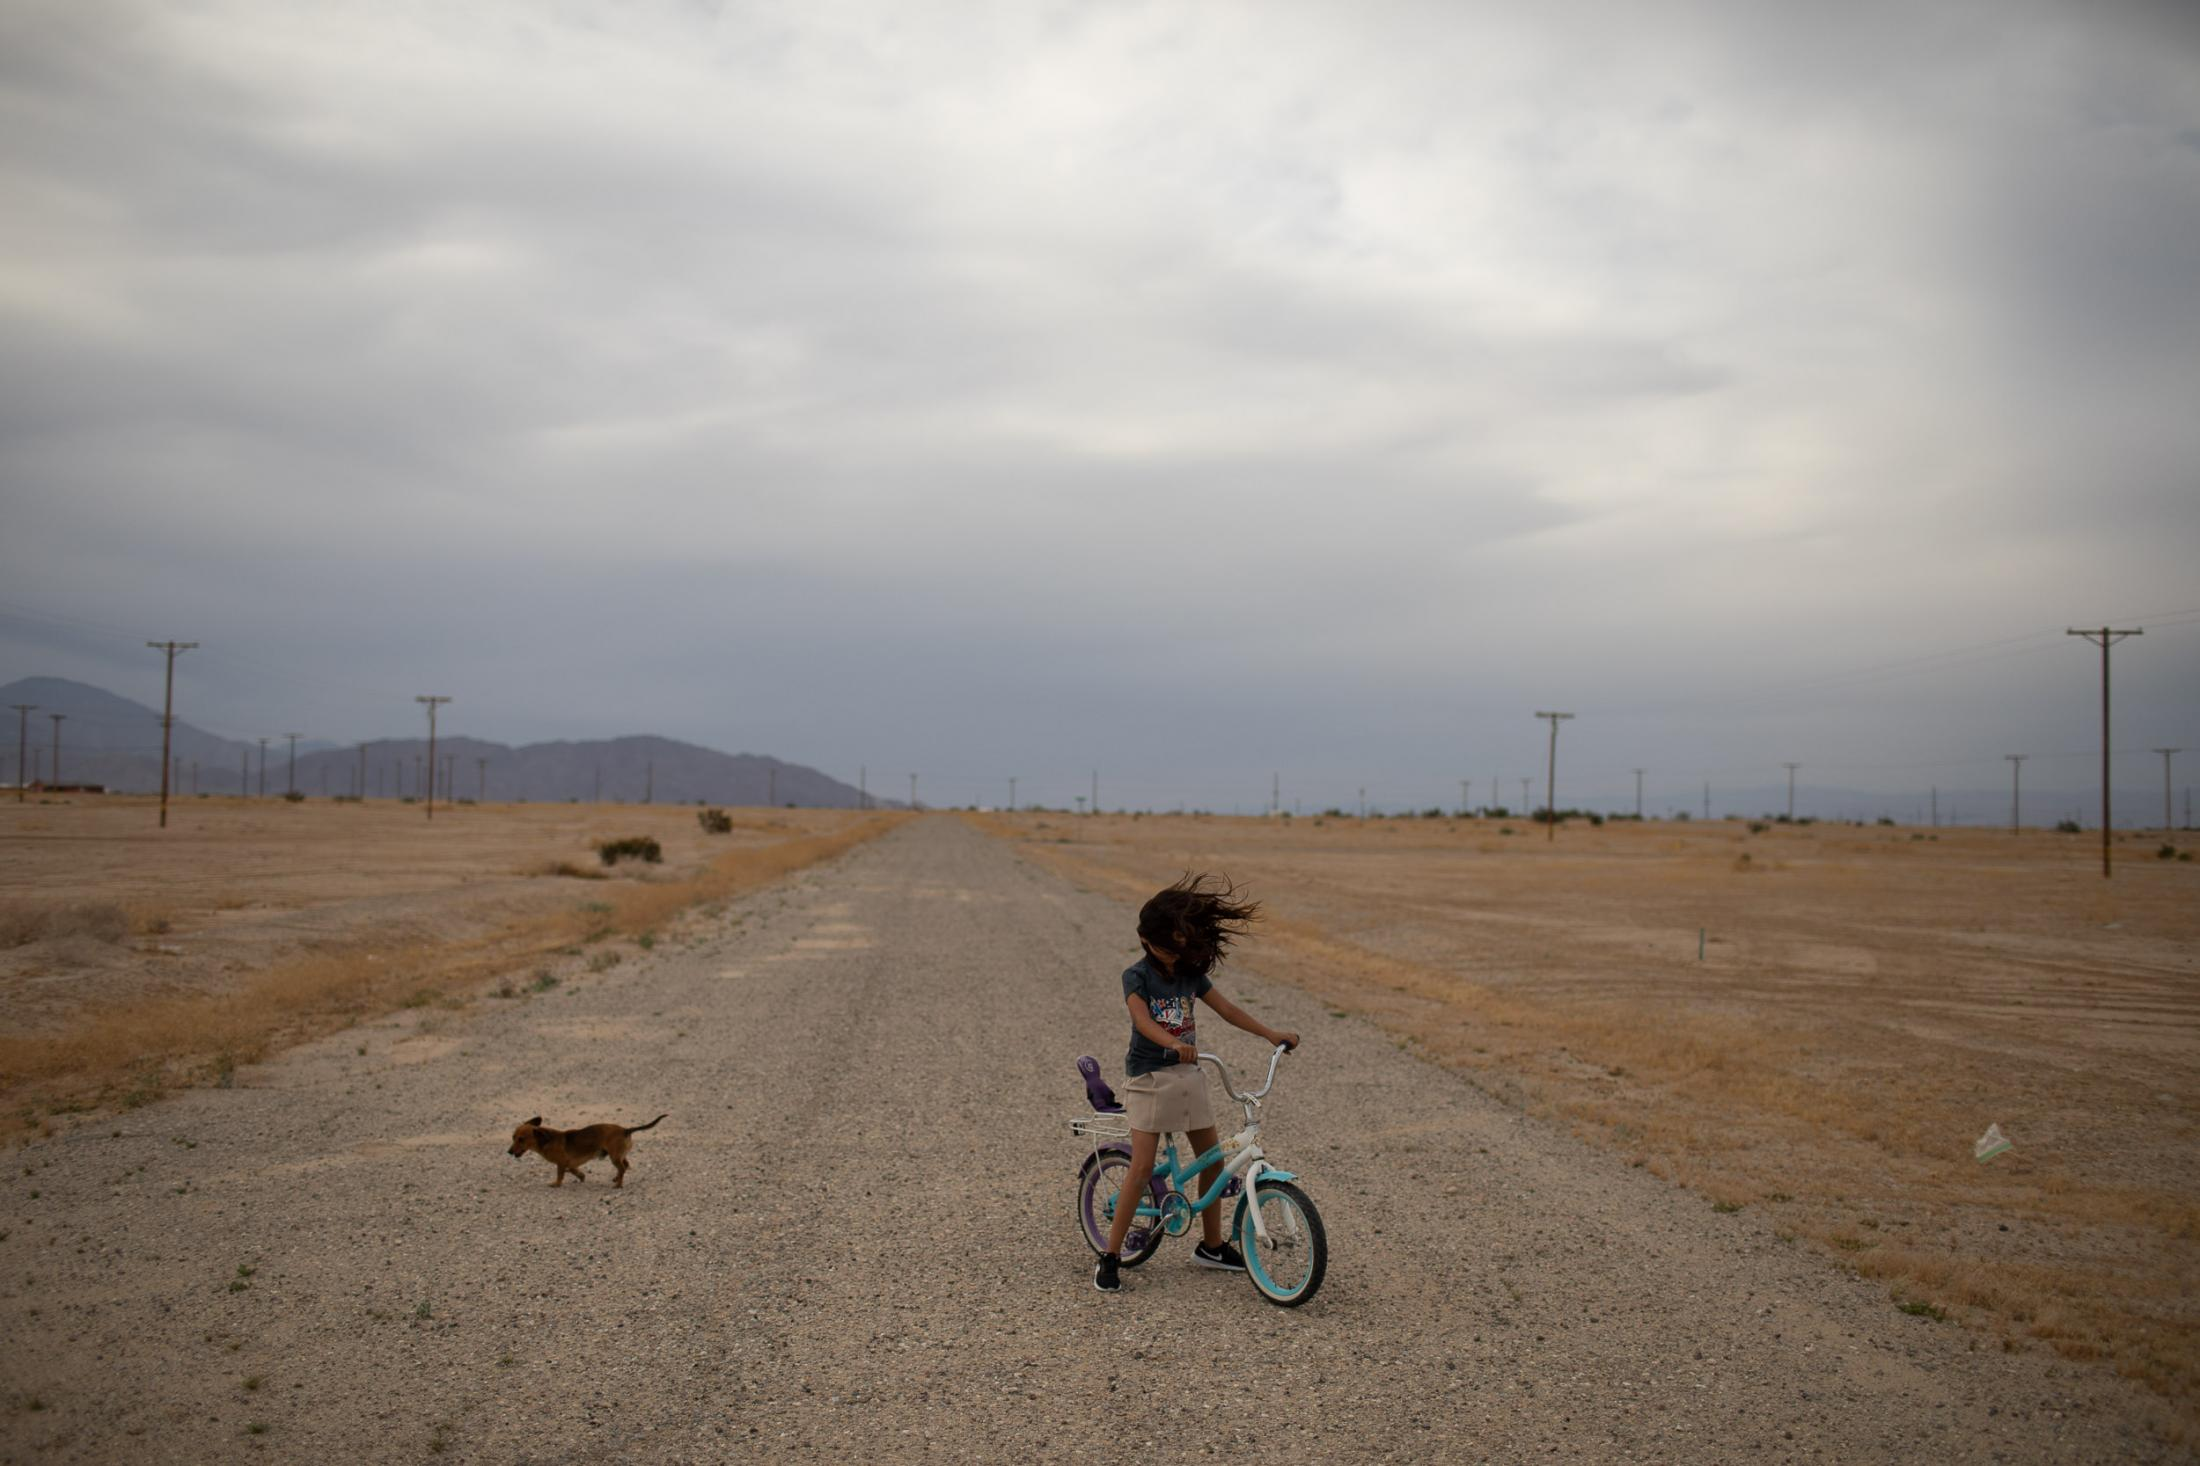 Lizzette is playing on her bicycle as strong winds are blowing across her neighborhood in Salton City.